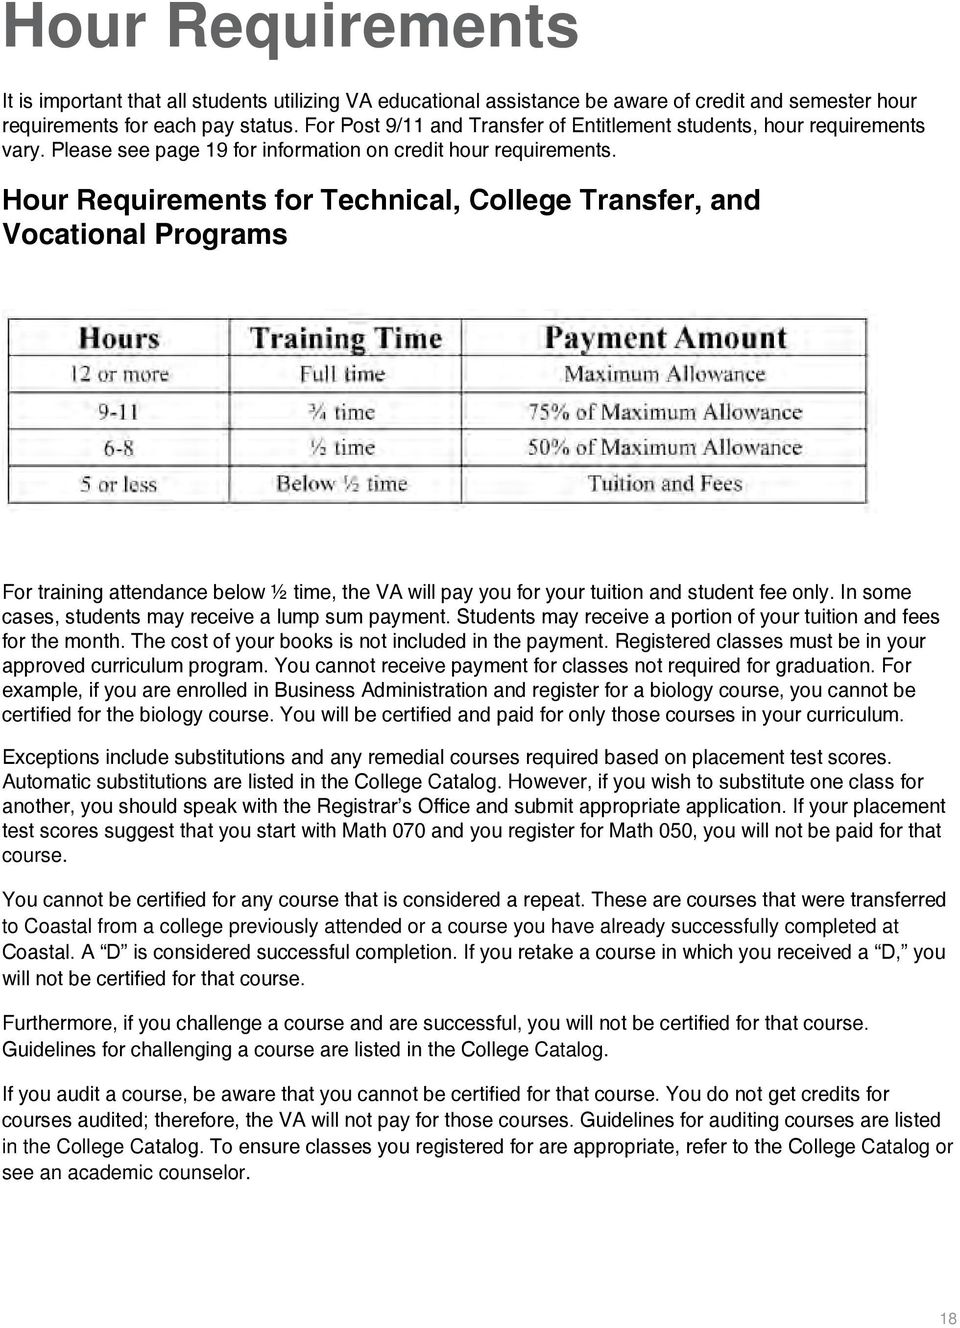 Hour Requirements for Technical, College Transfer, and Vocational Programs For training attendance below ½ time, the VA will pay you for your tuition and student fee only.